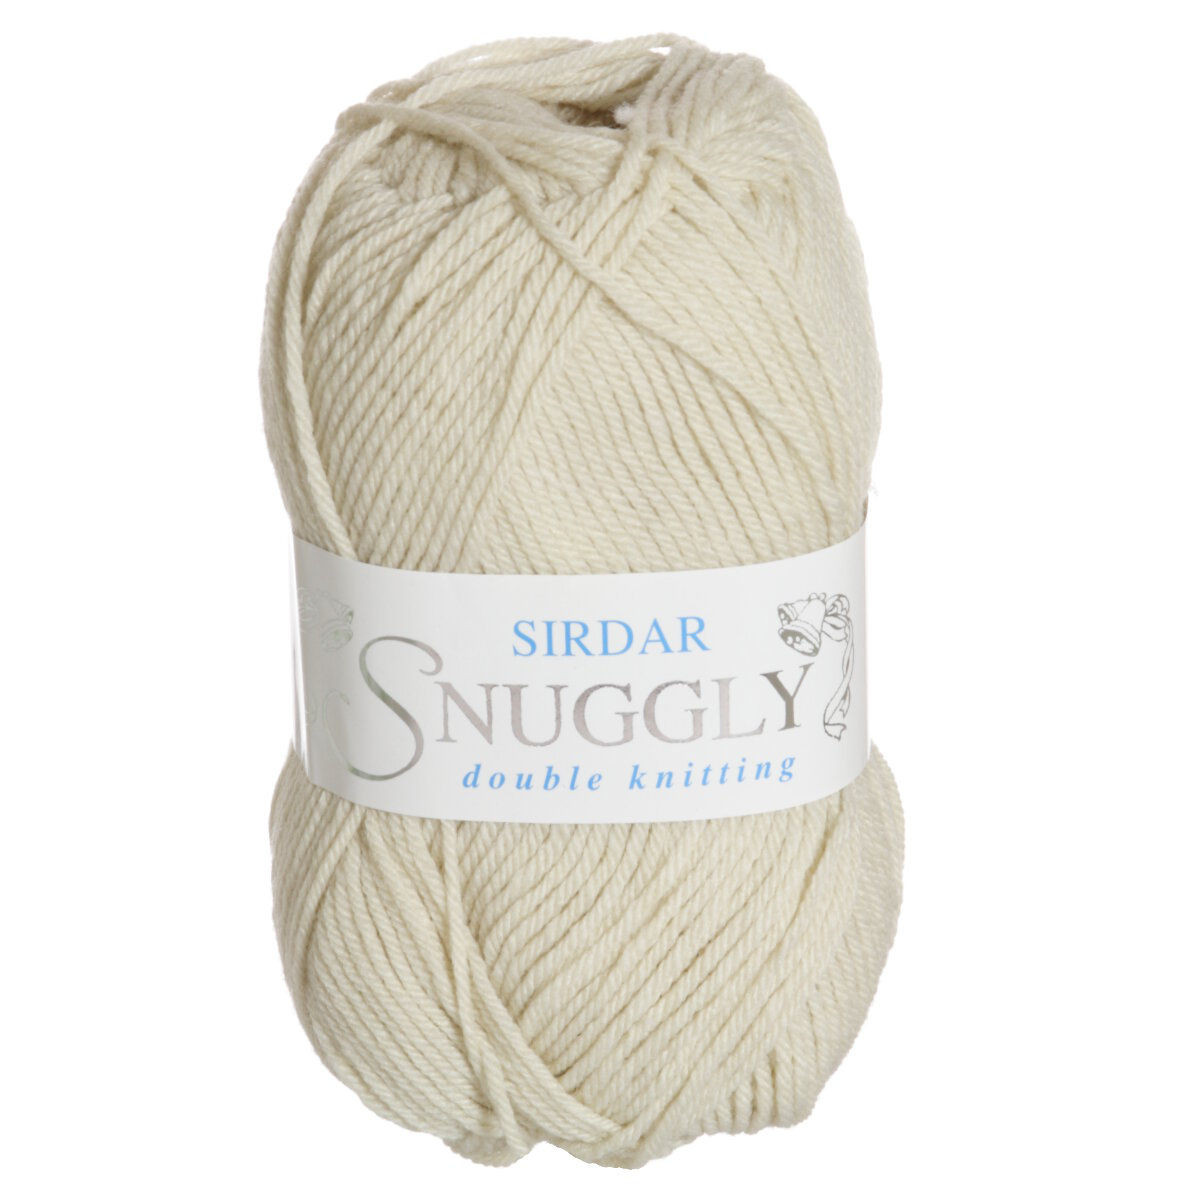 Sirdar Snuggly Elegant Sirdar Snuggly Snuggly Dk Yarn 0446 Rice Pudding Of Top 49 Pics Sirdar Snuggly